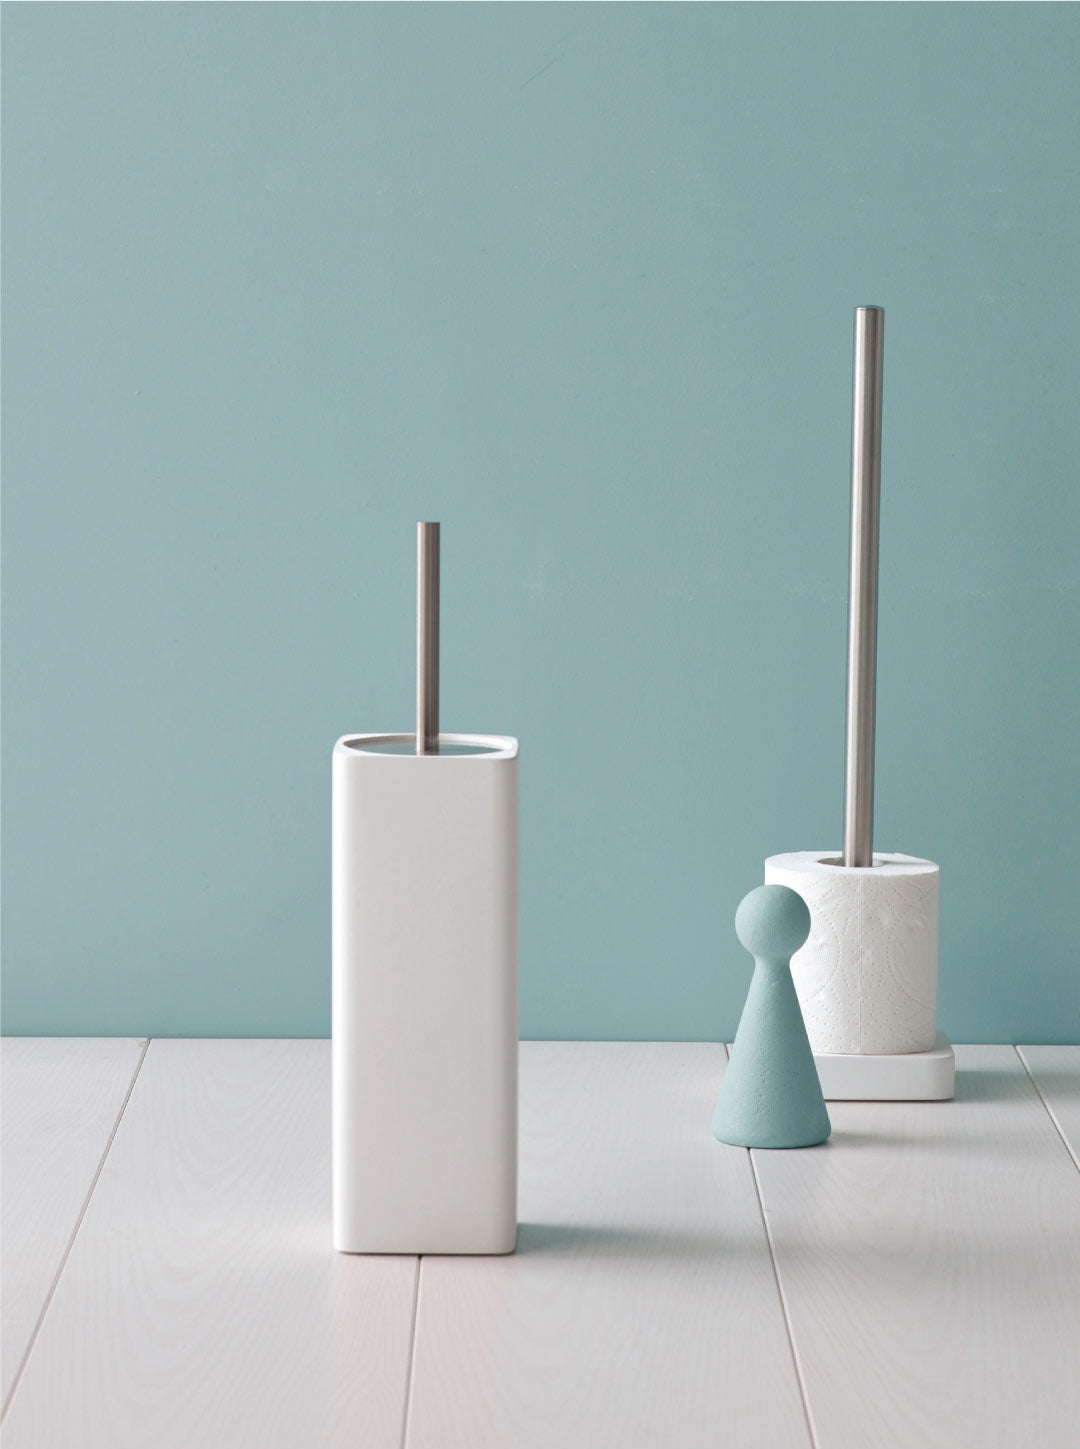 Toilet brush holders